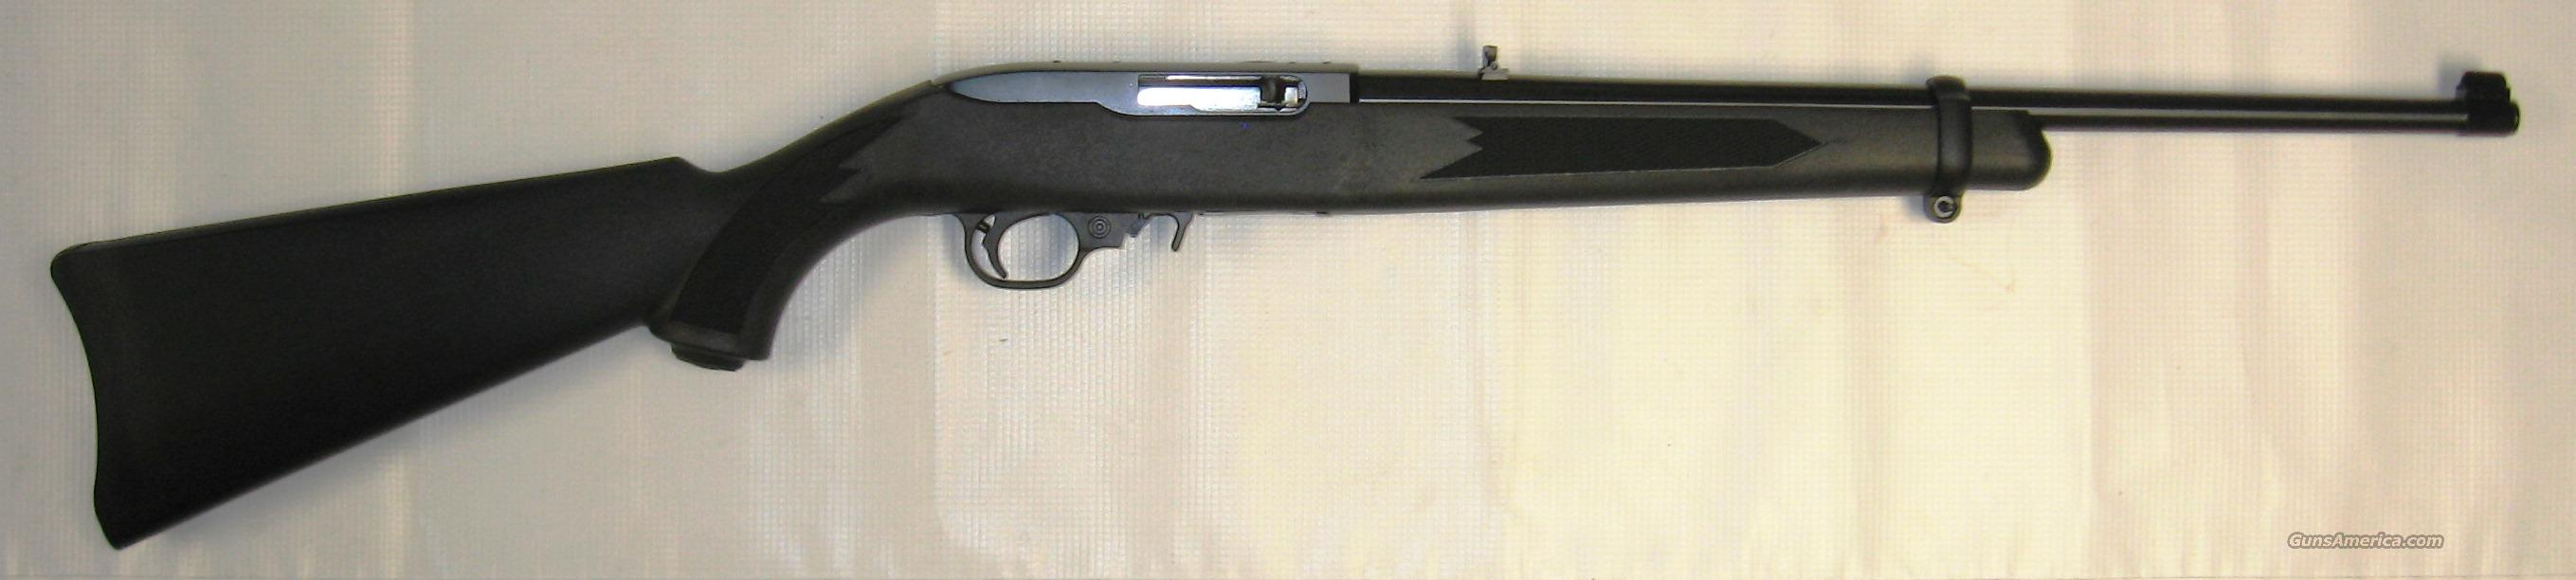 Ruger 10/22 Black Synthetic  Guns > Rifles > Ruger Rifles > 10-22